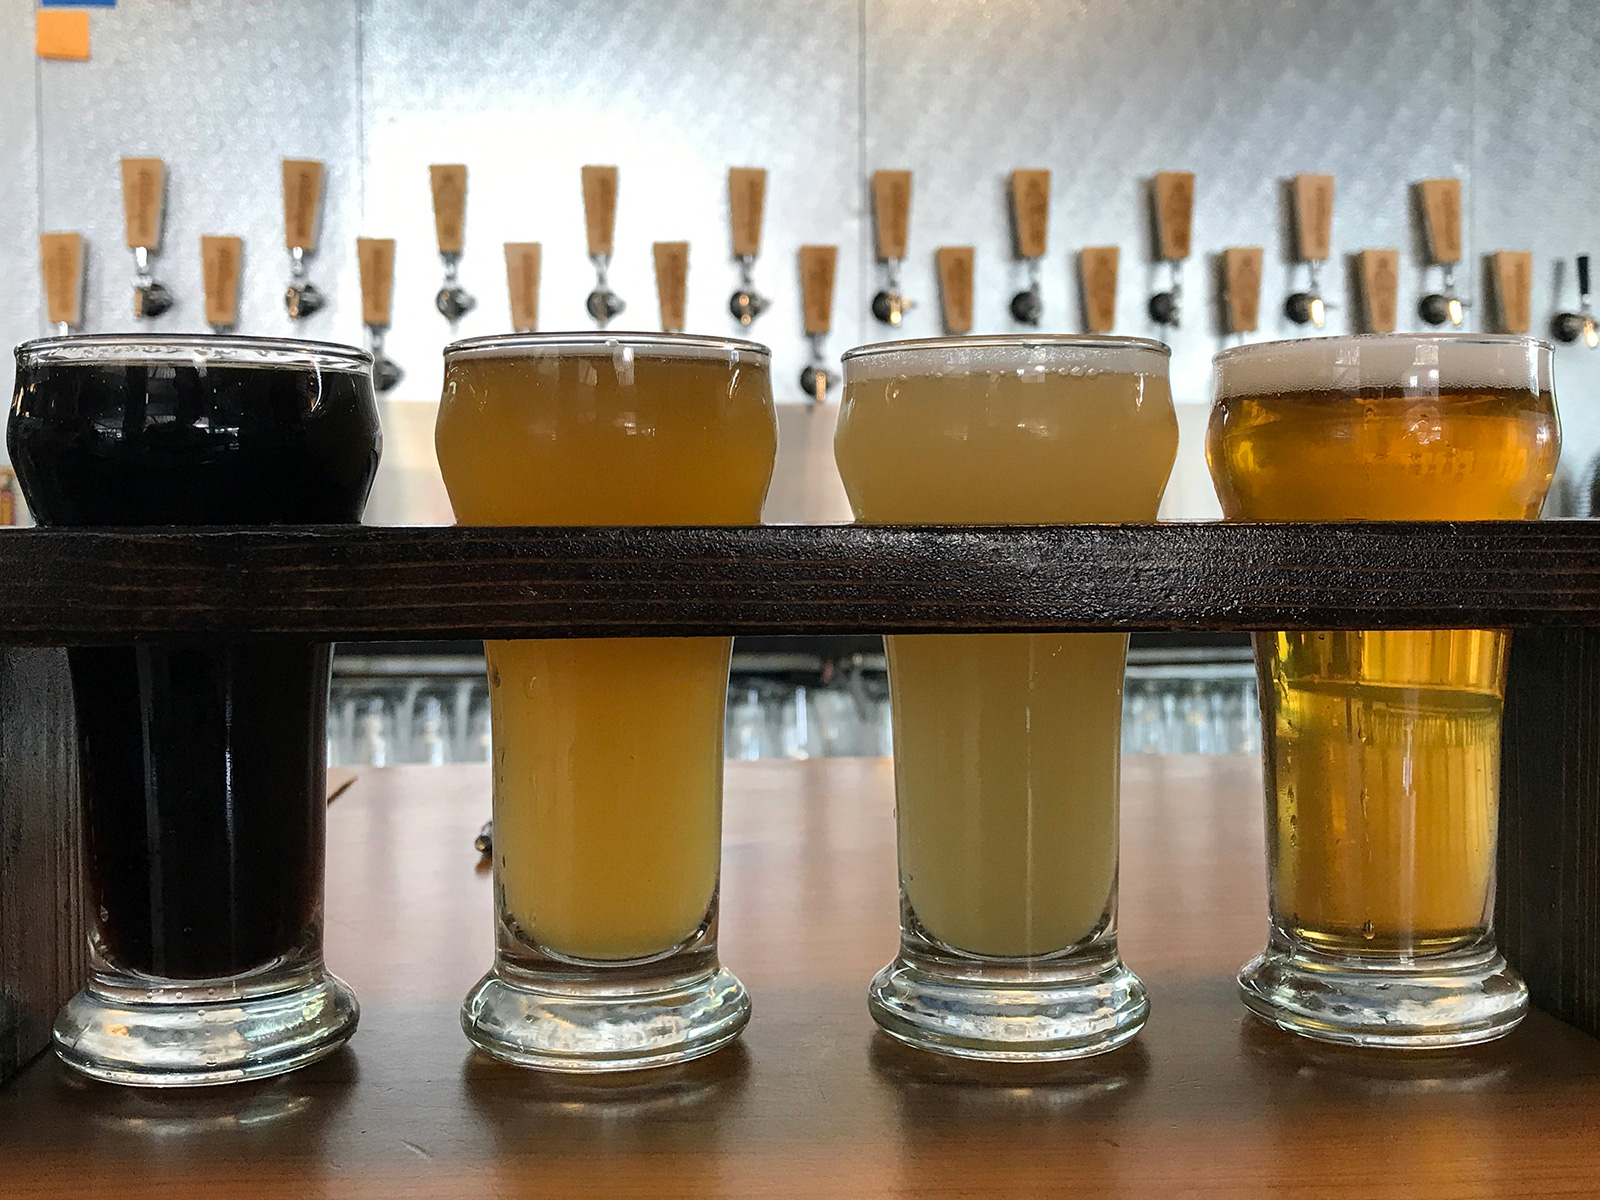 Watermark Brewing Co. in Stevensville, Michigan by Jets Like Taxis / Hopsmash